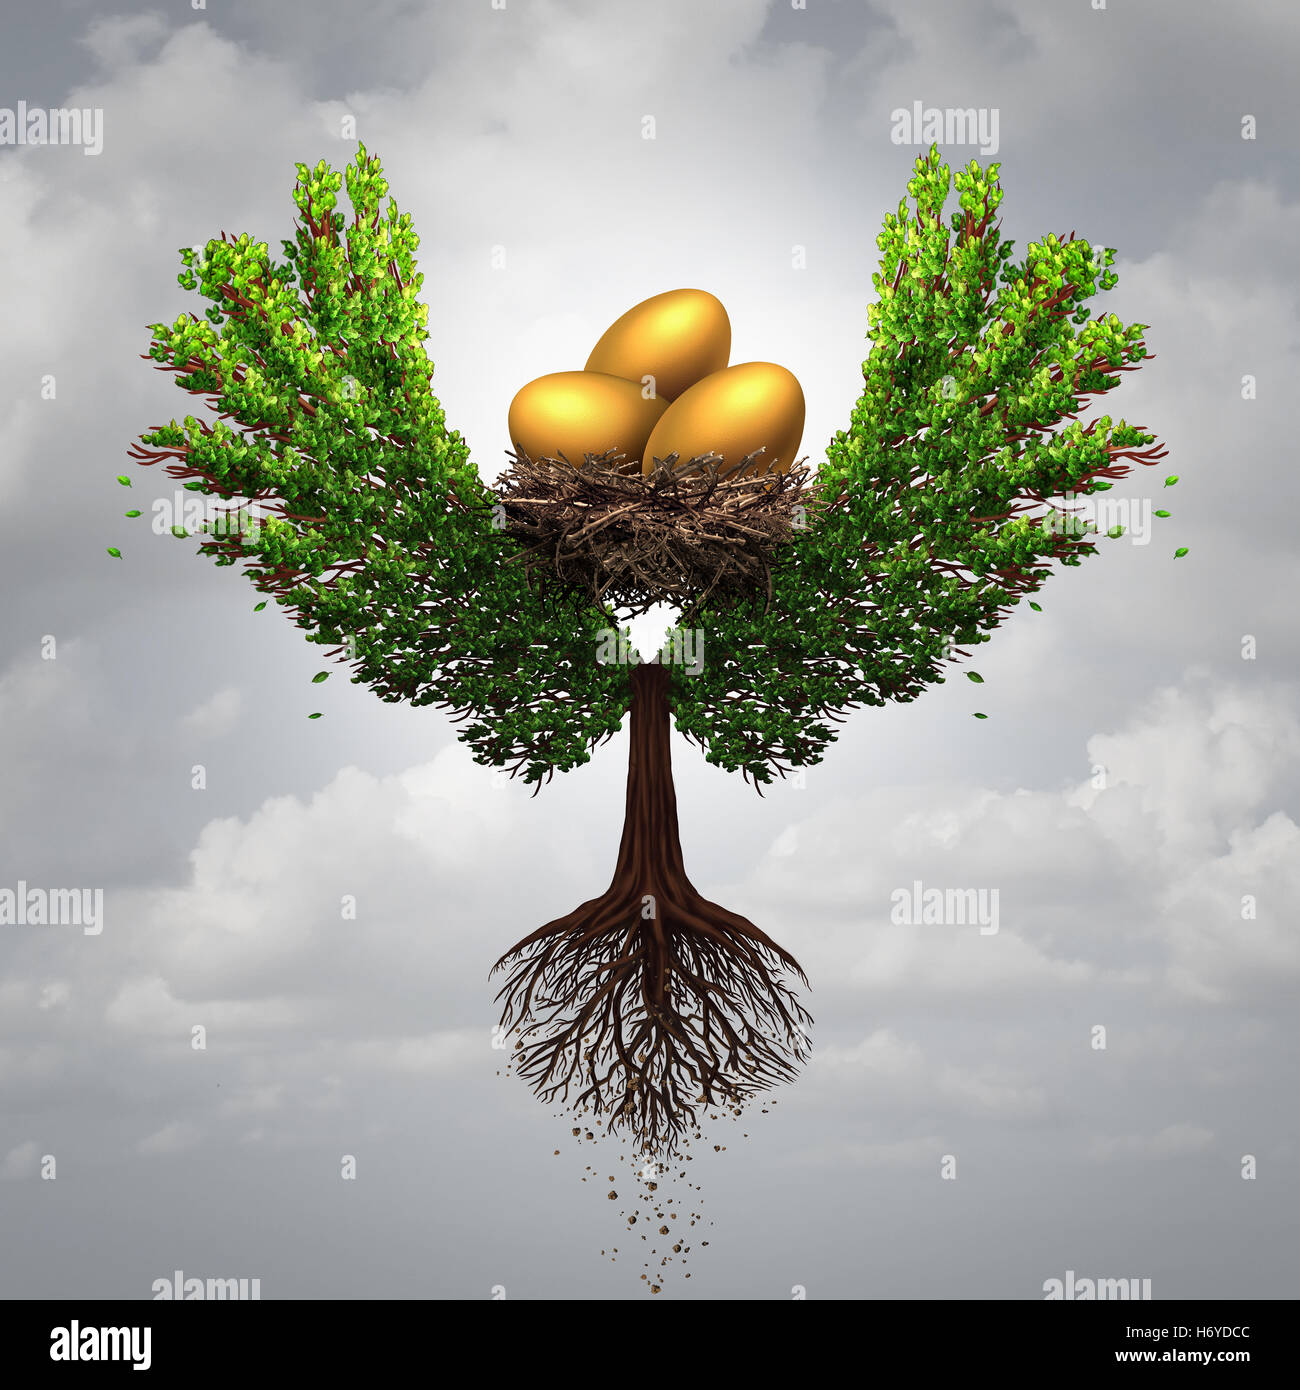 Transfer funds financial concept and international money transfer symbol as a tree shaped as a bird with wings transporting - Stock Image